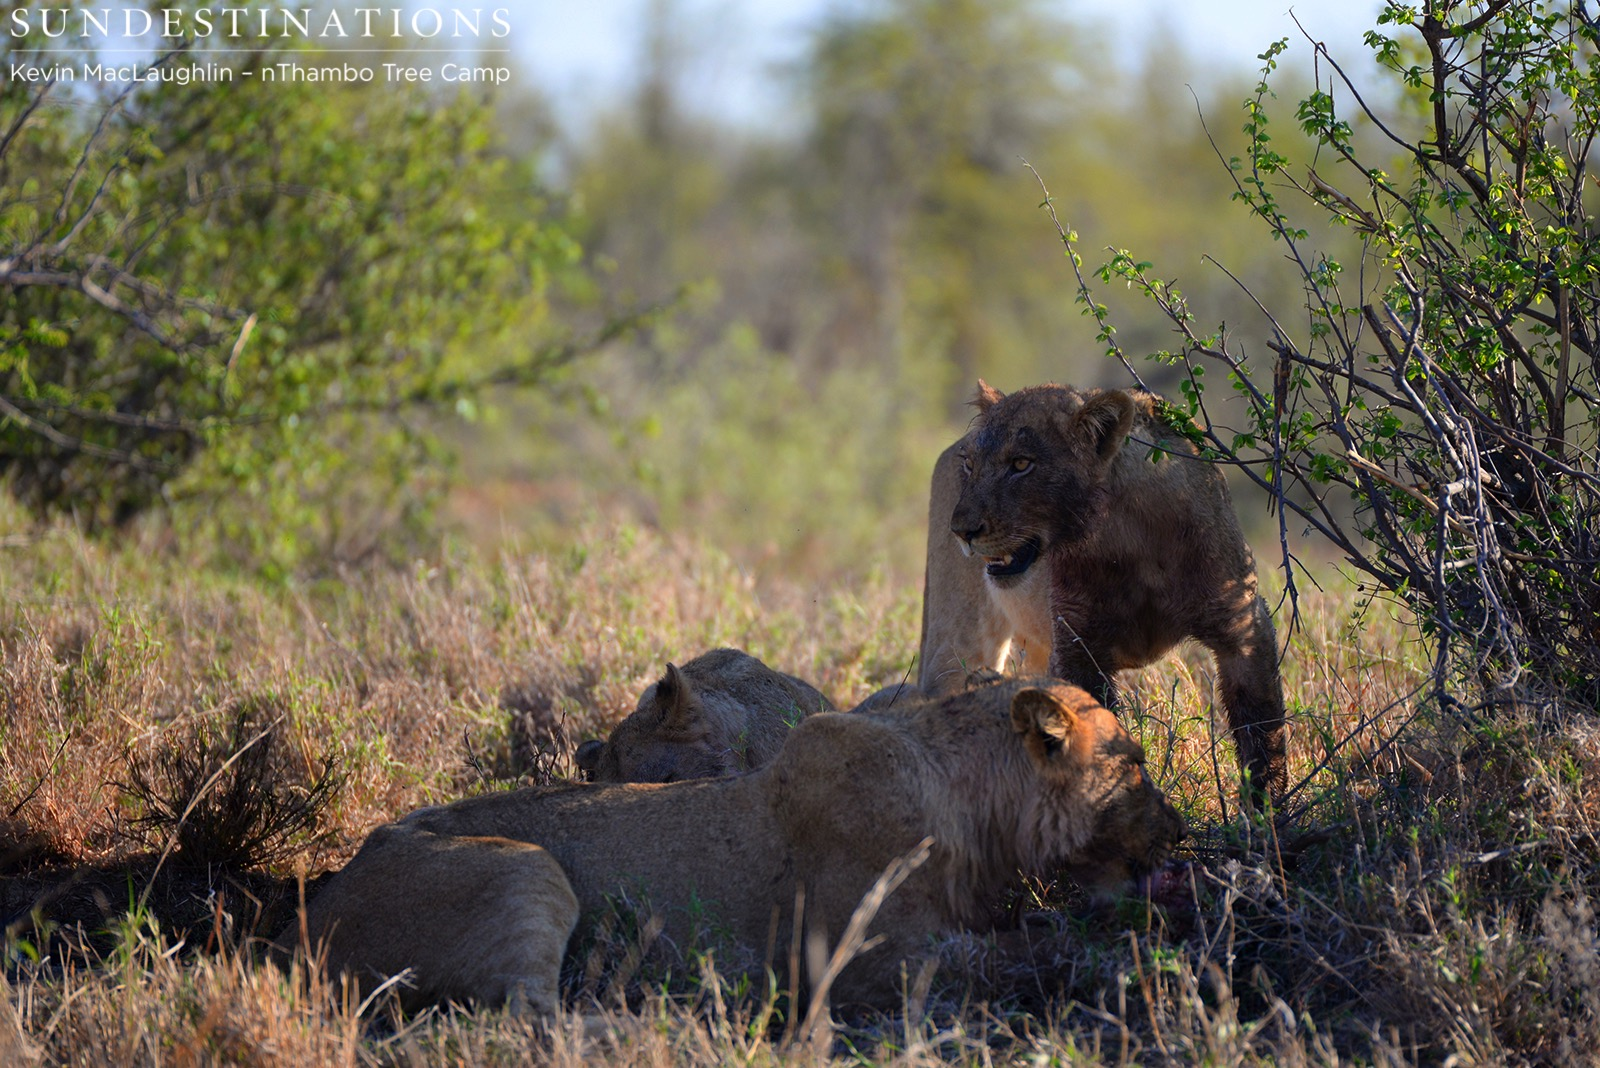 The Ross Pride lions share a warthog